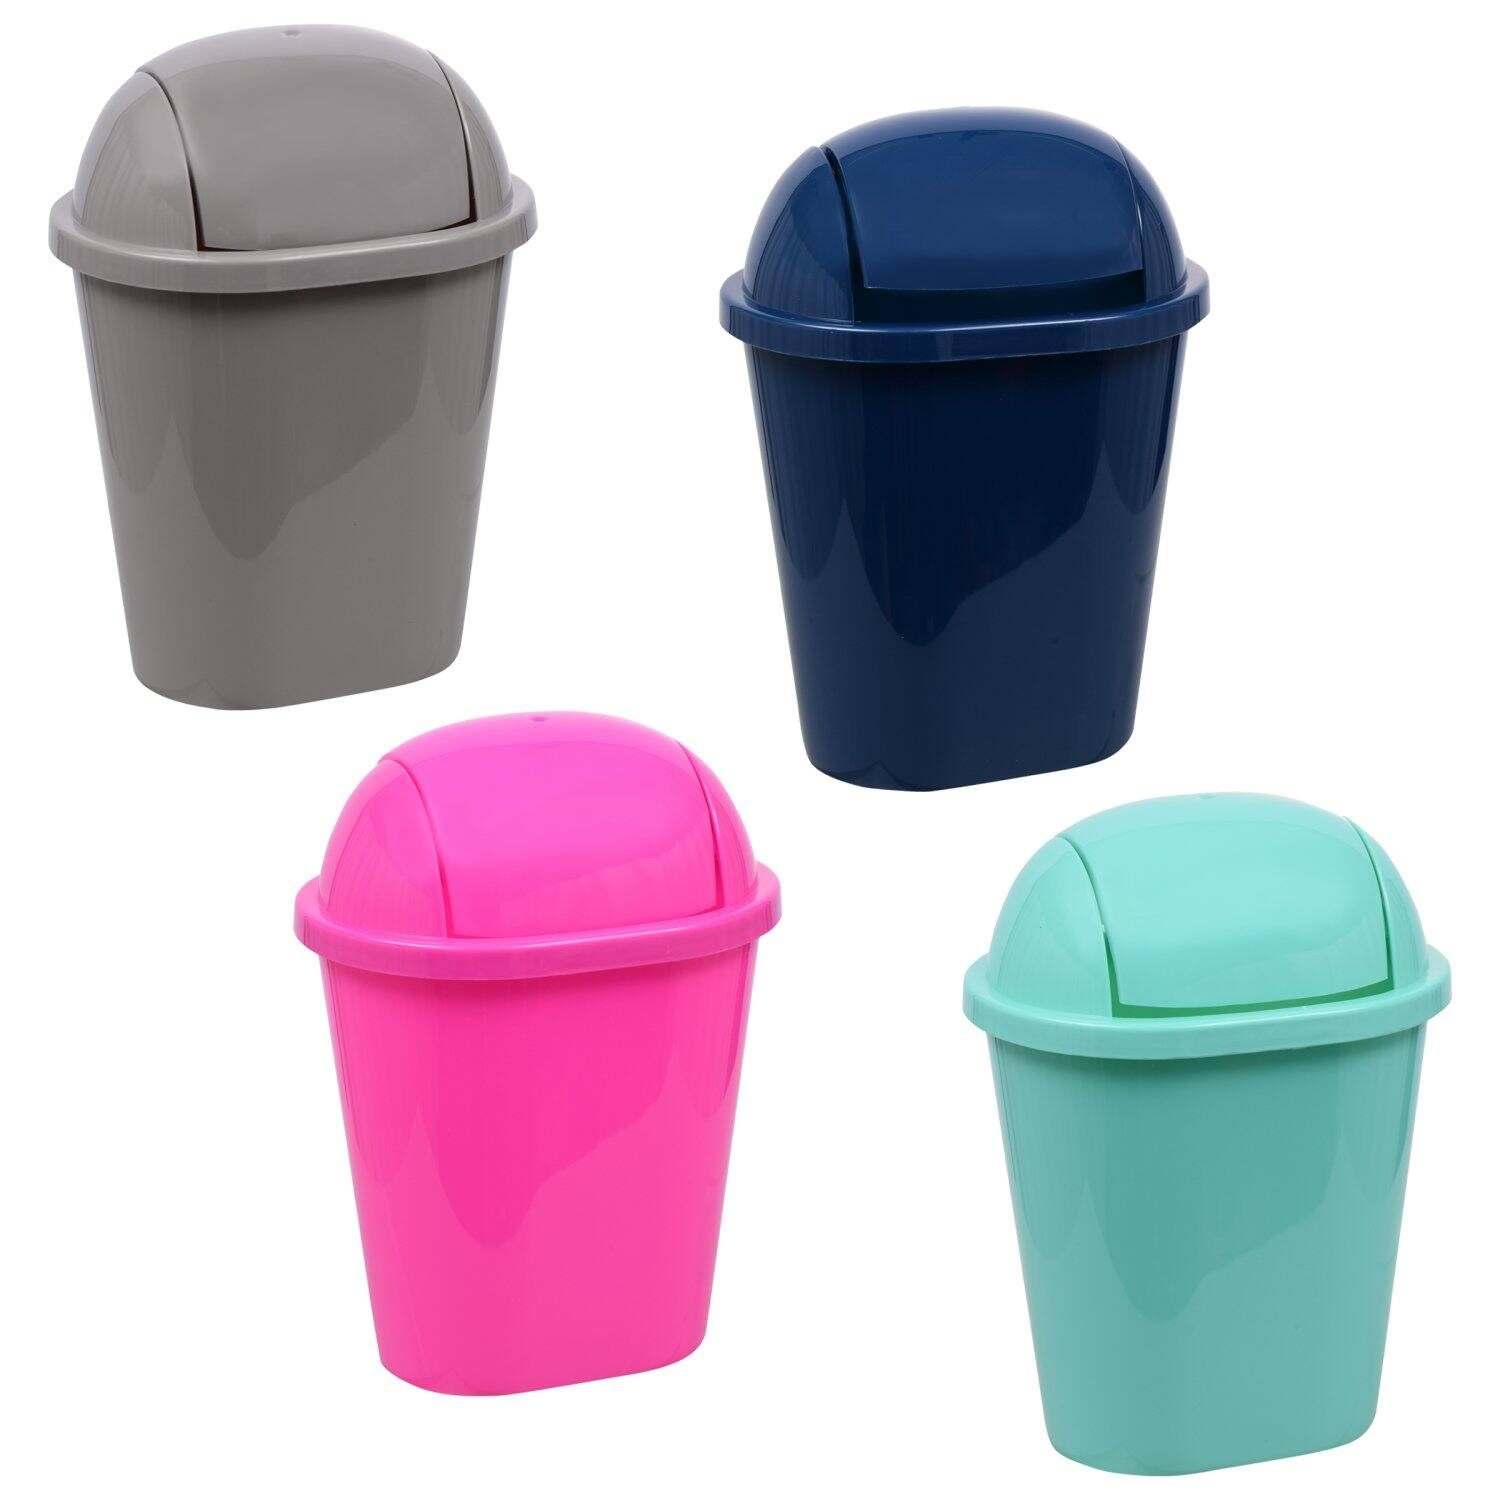 Brightly Colored Swing-Top Wastebaskets